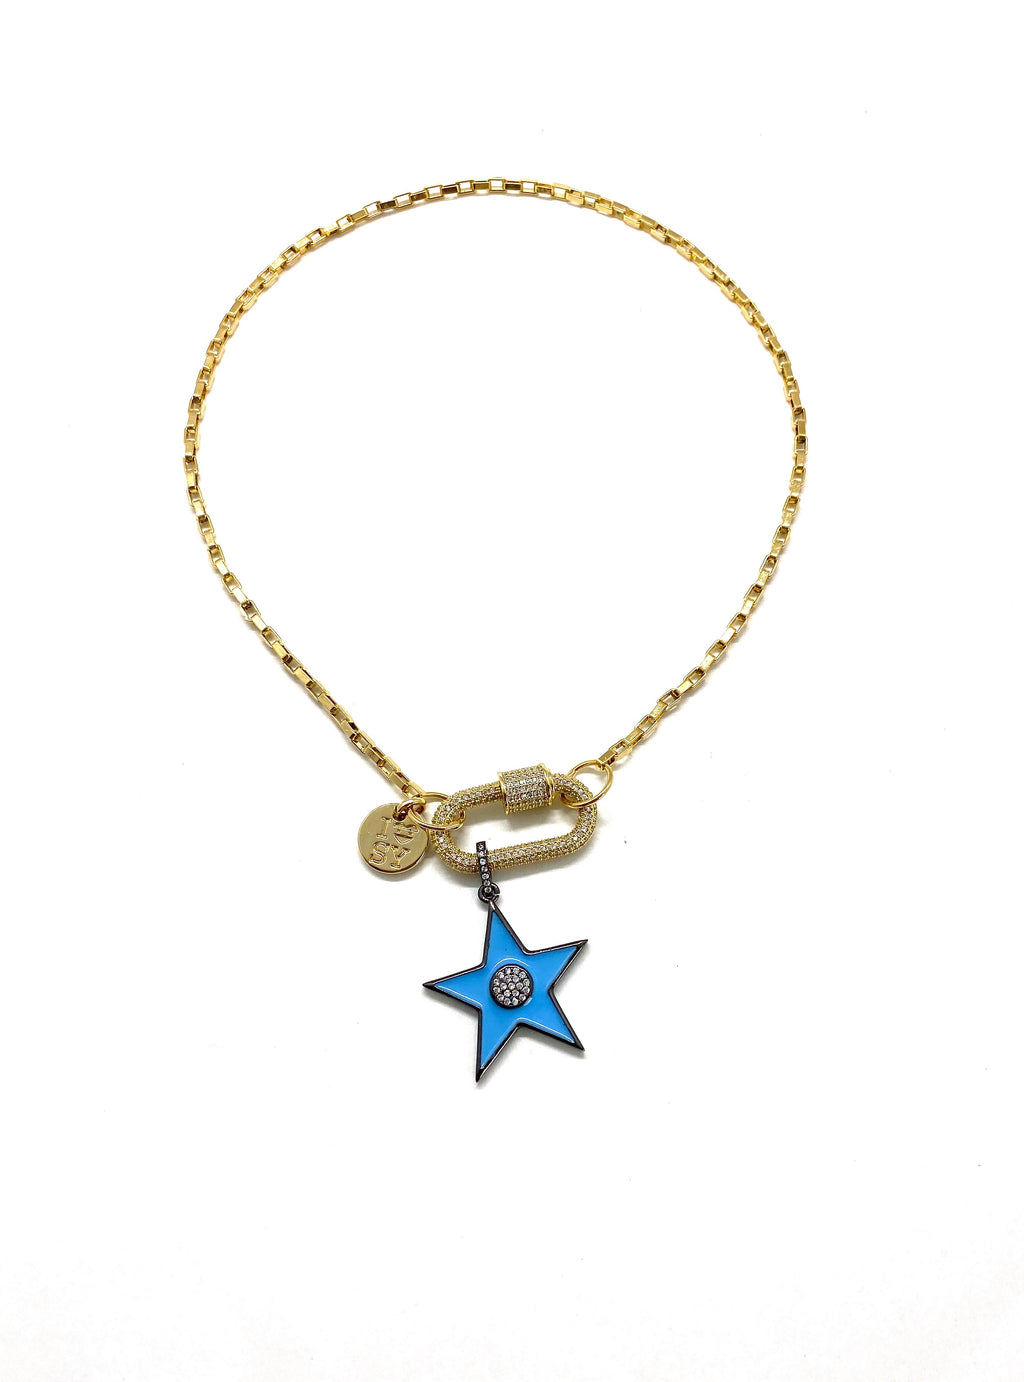 Clip to impact gold chain necklace, gold studded clip and blue star.